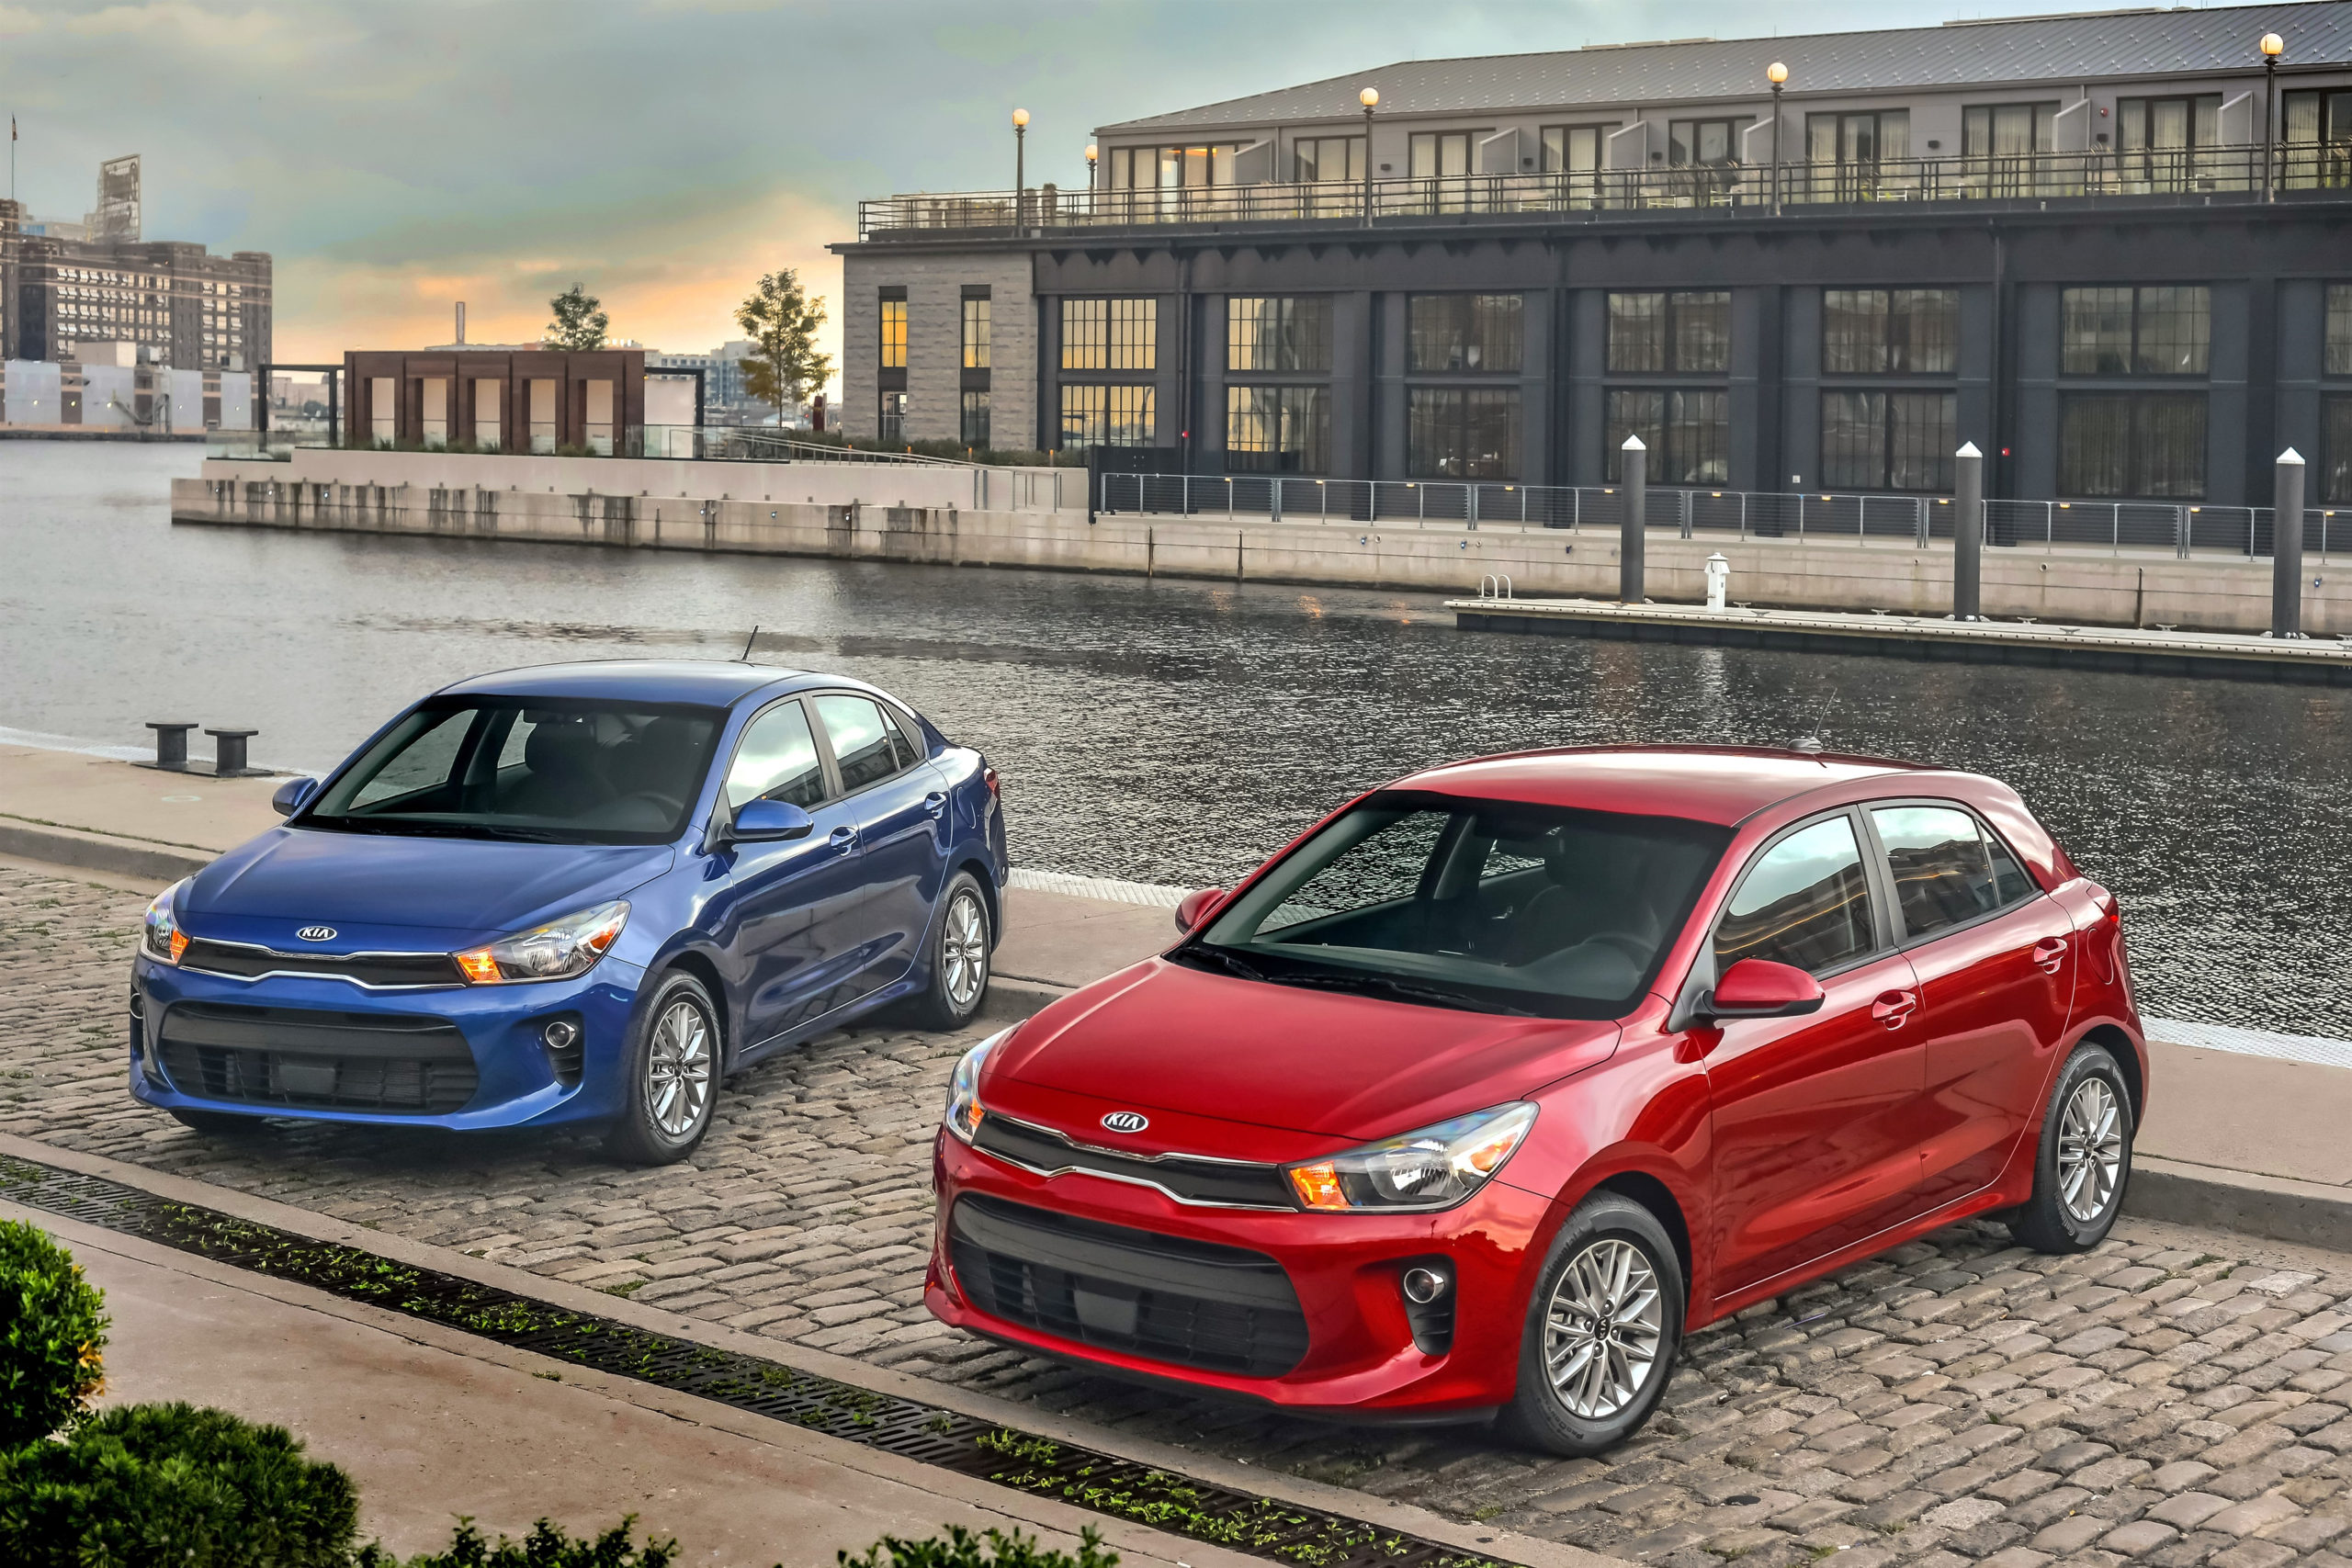 Kia's Product Line-Up Until 2022 - Korean Car Blog - 2022 Kia Rio 5 Door For Sale Performance Changes, Transmission Rumor